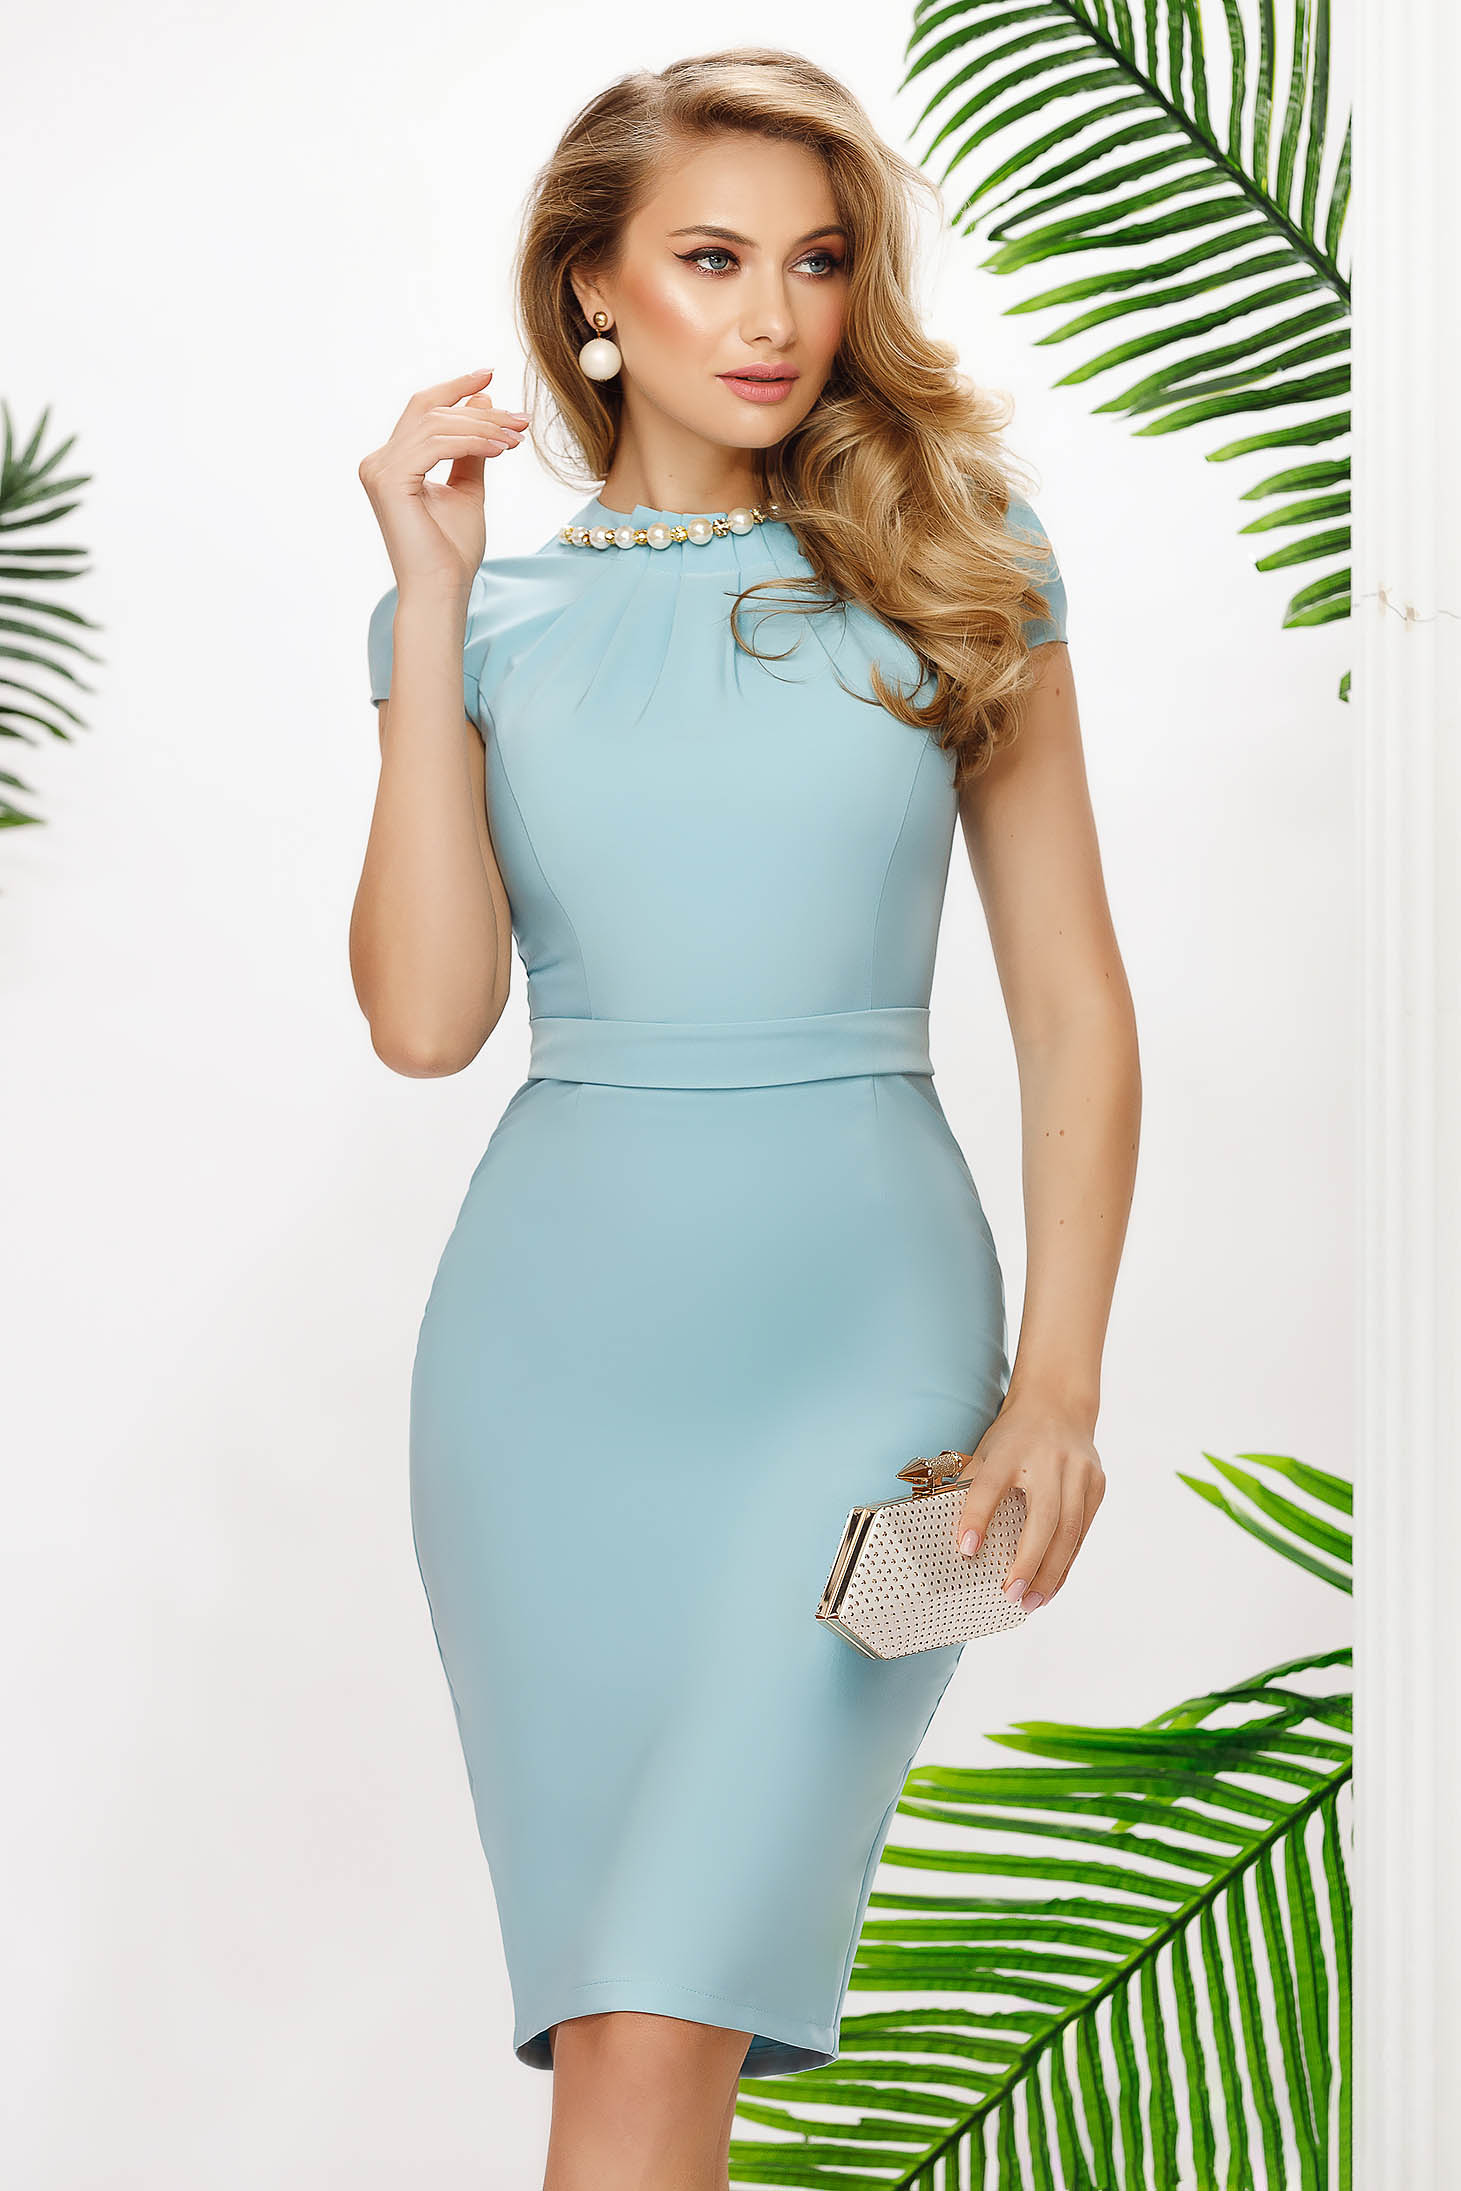 Lightblue dress midi pencil accessorized with chain with pearls